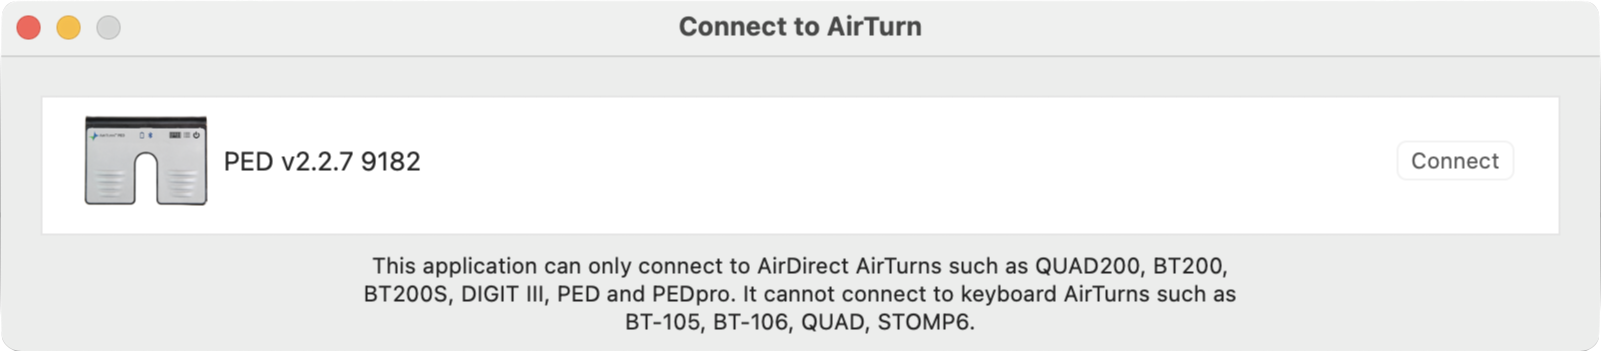 airturn-mgr-connect.png